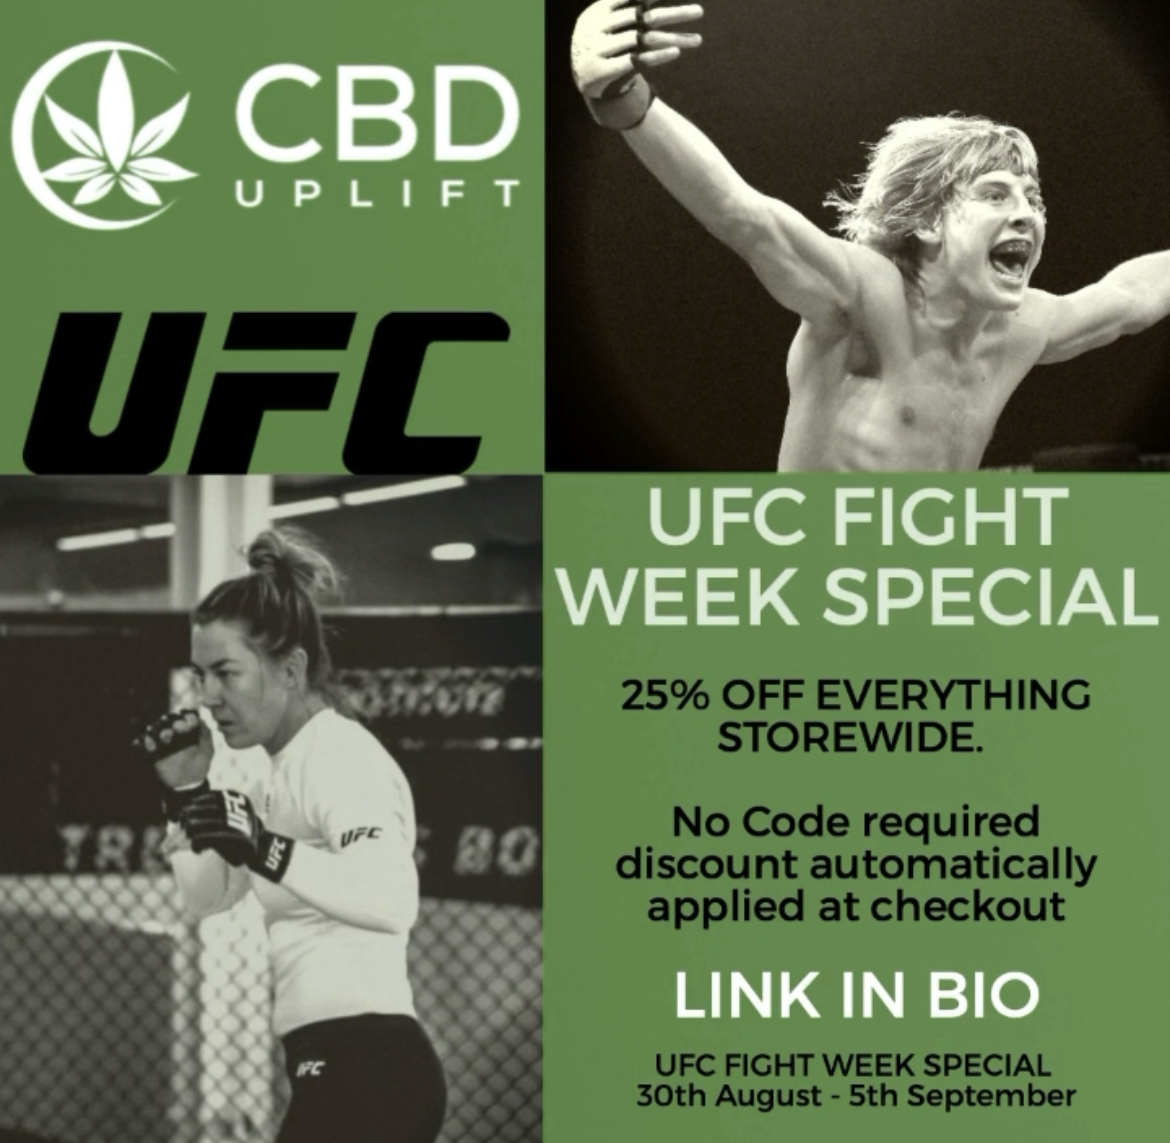 UFC FIGHT WEEK SPECIAL - 25% OFF EVERY ORDER - SHOP NOW